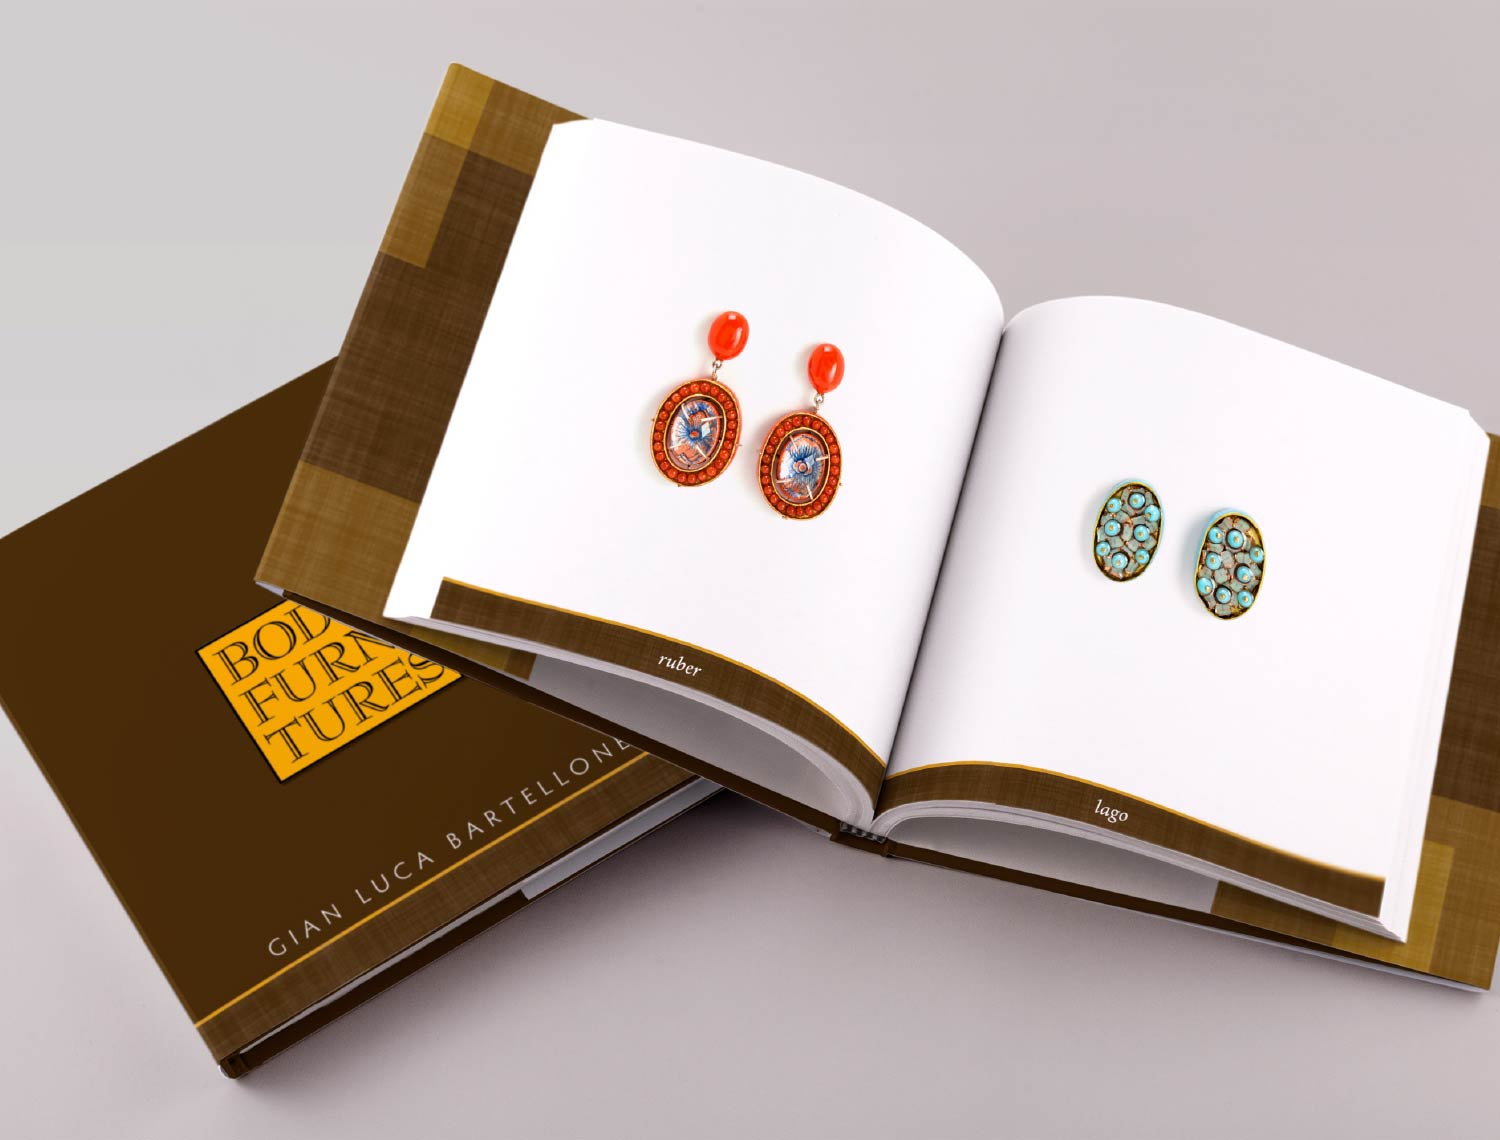 the 2018 jewelry catalogue bodyfurnitures gian luca bartellone gioielli italy author jewelry